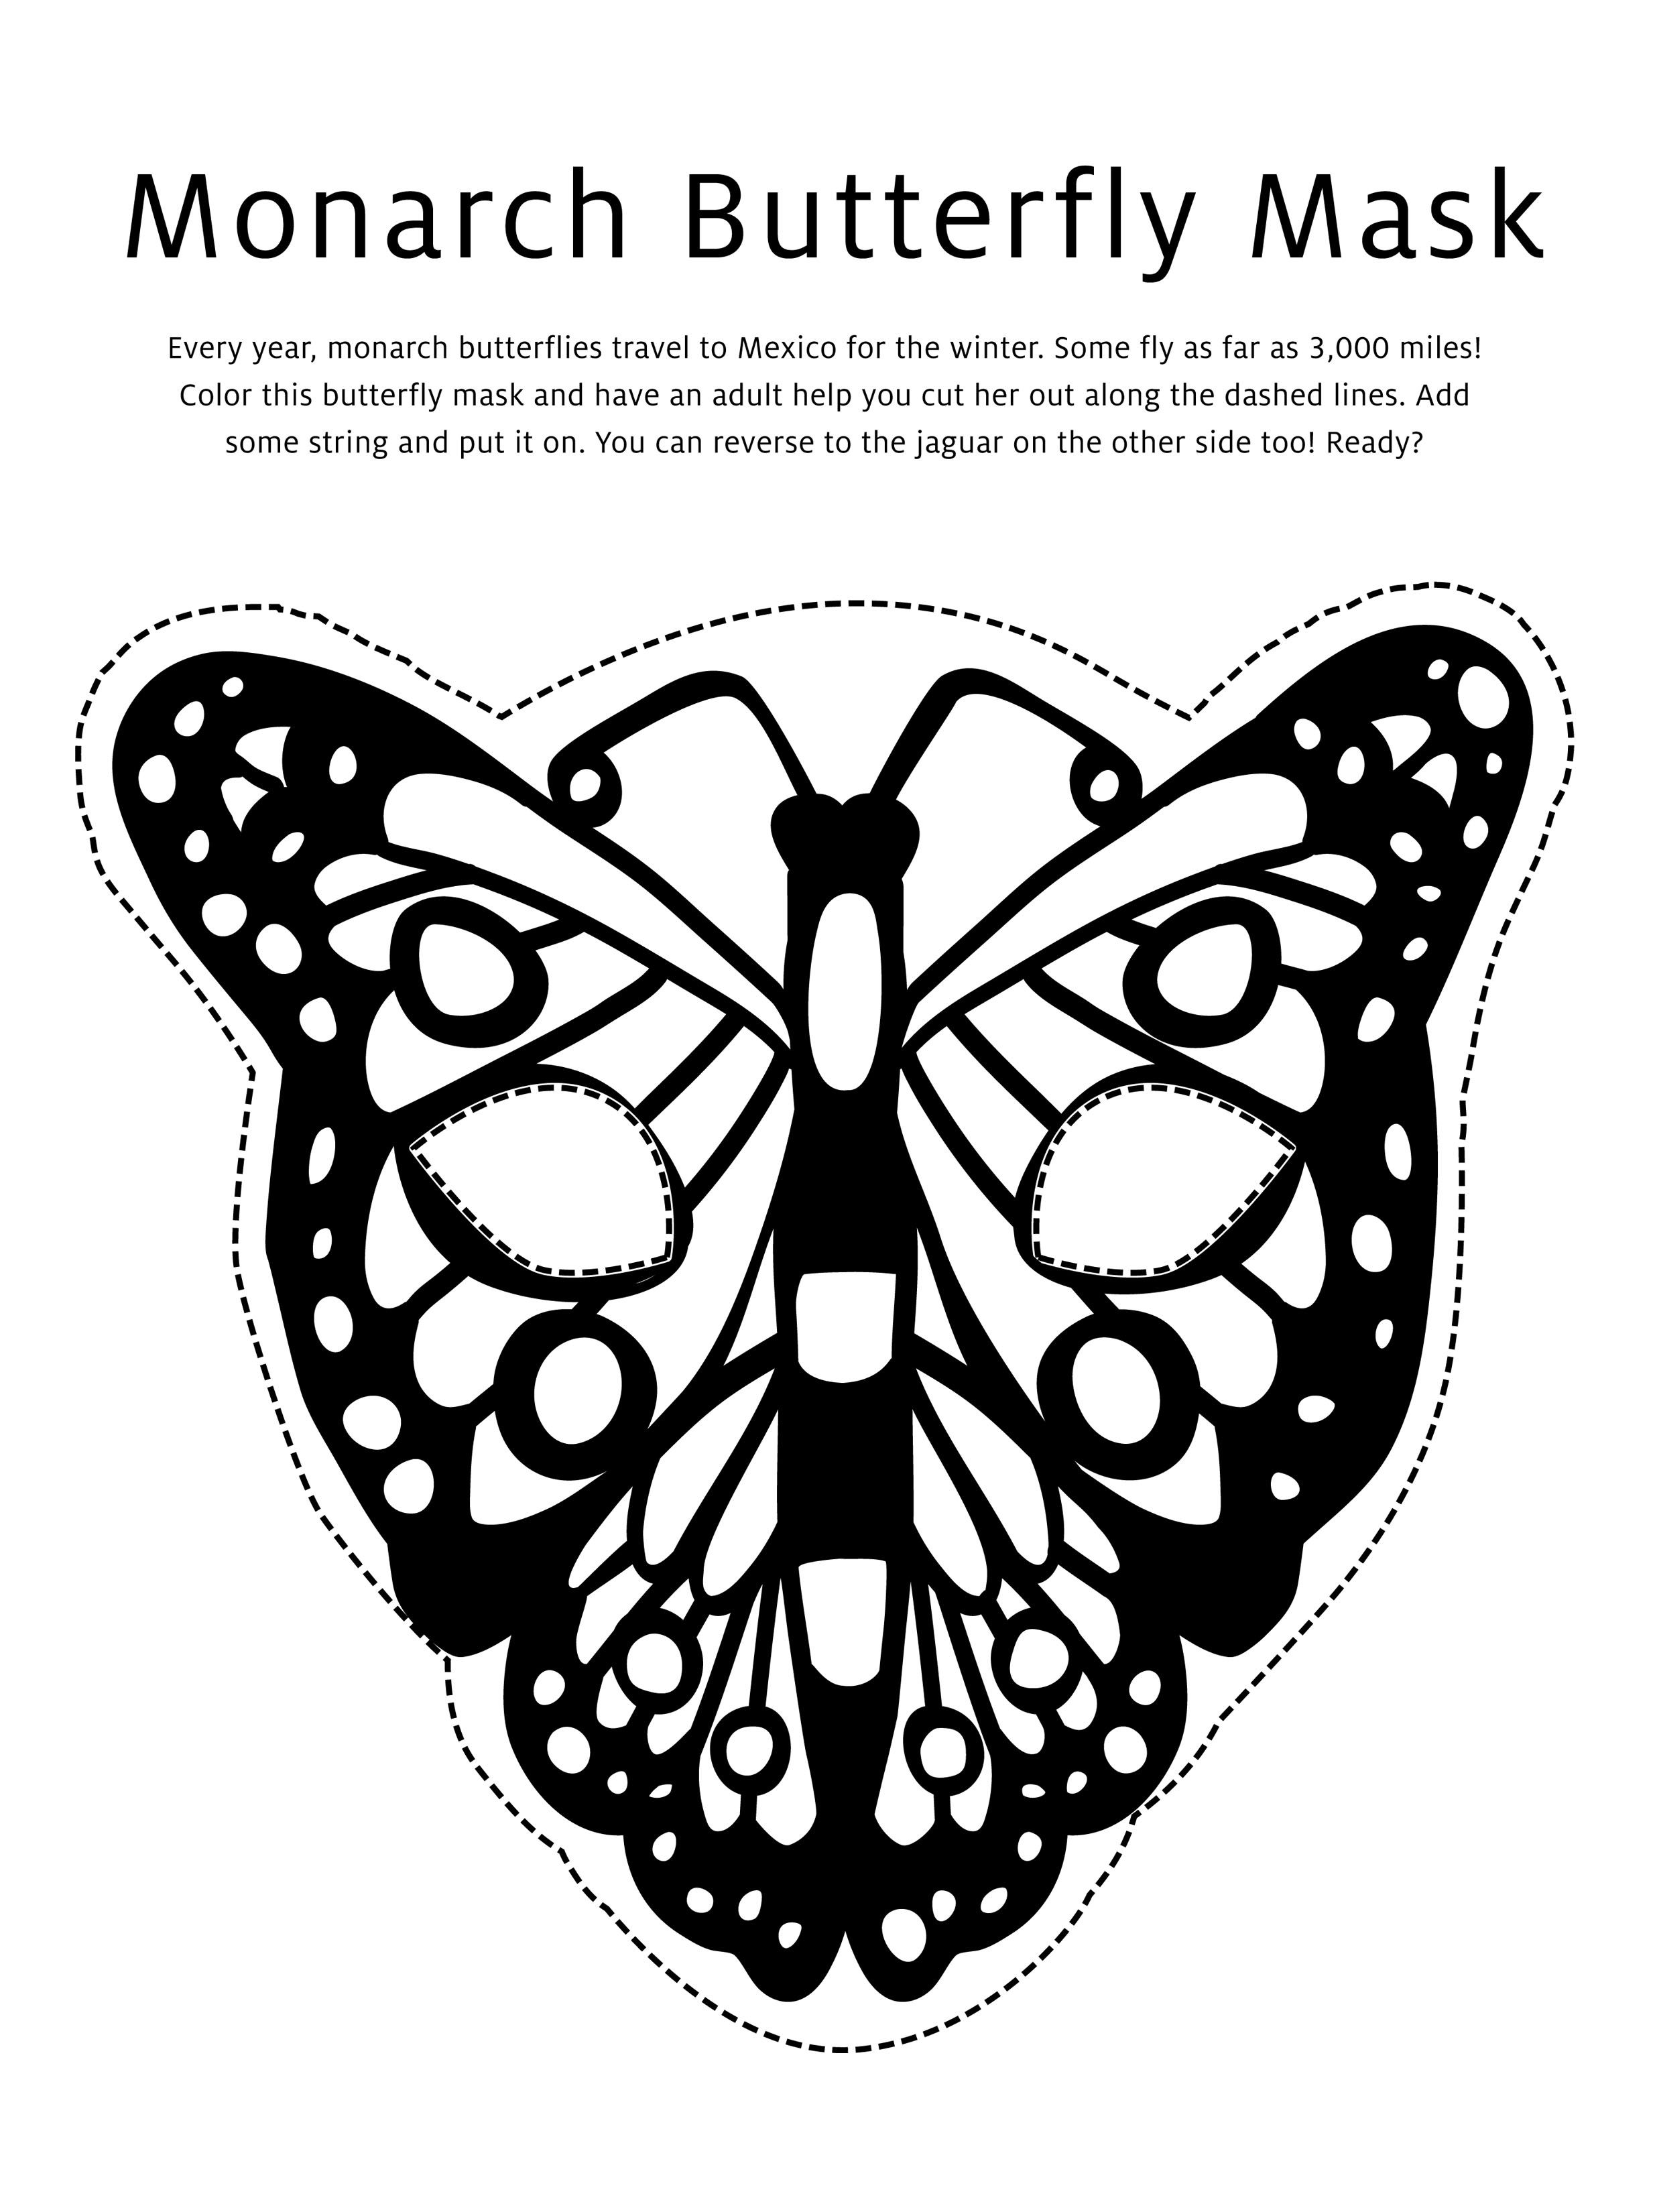 Butterfly Mask Coloring Page Kids Printable Coloring Pages Butterfly Mask Butterfly Coloring Page